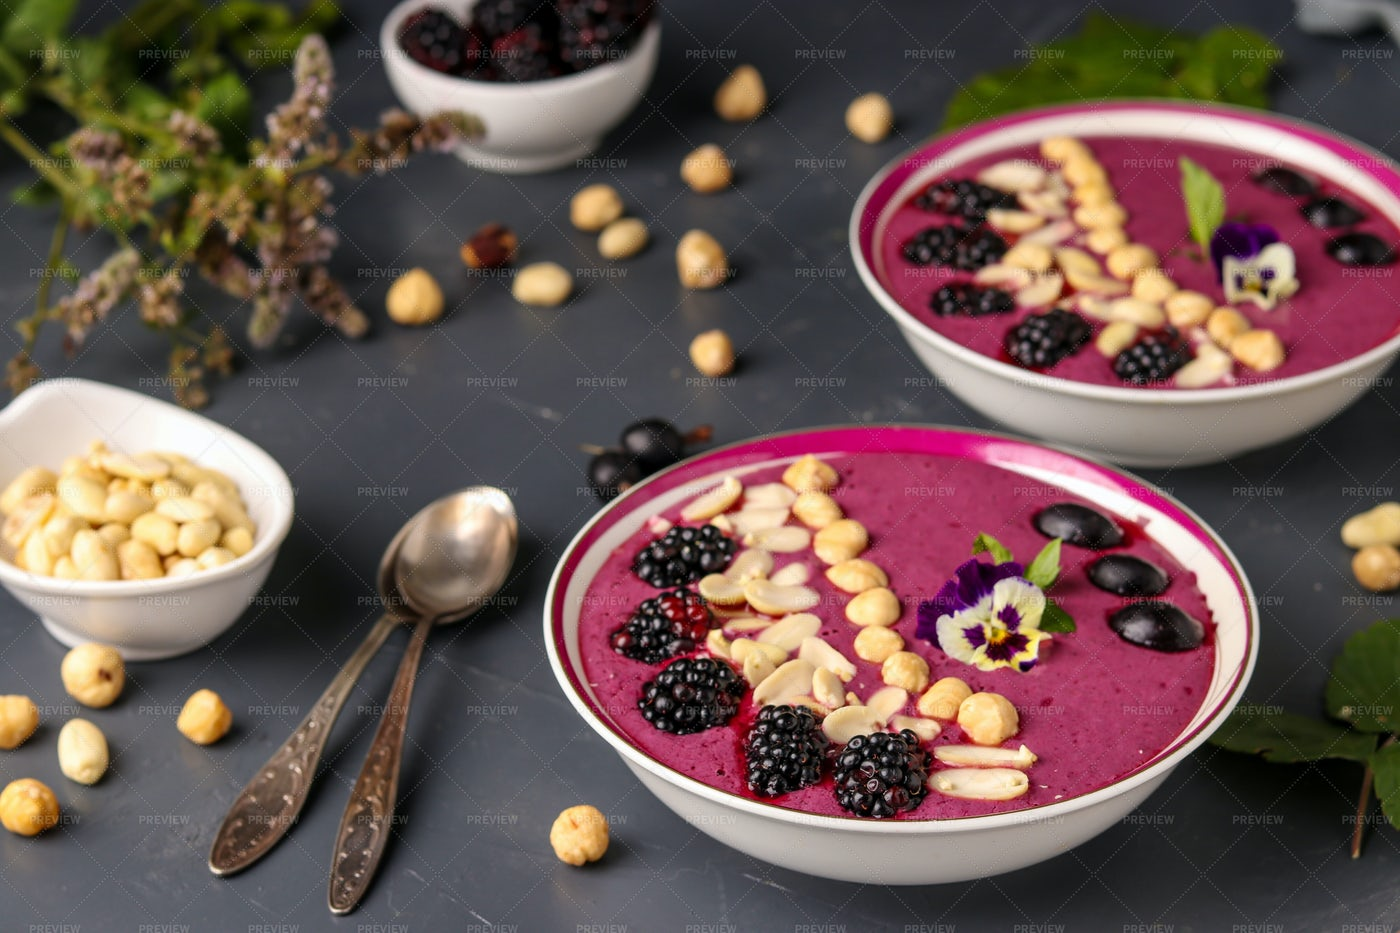 Smoothie Bowl With Blackberries: Stock Photos